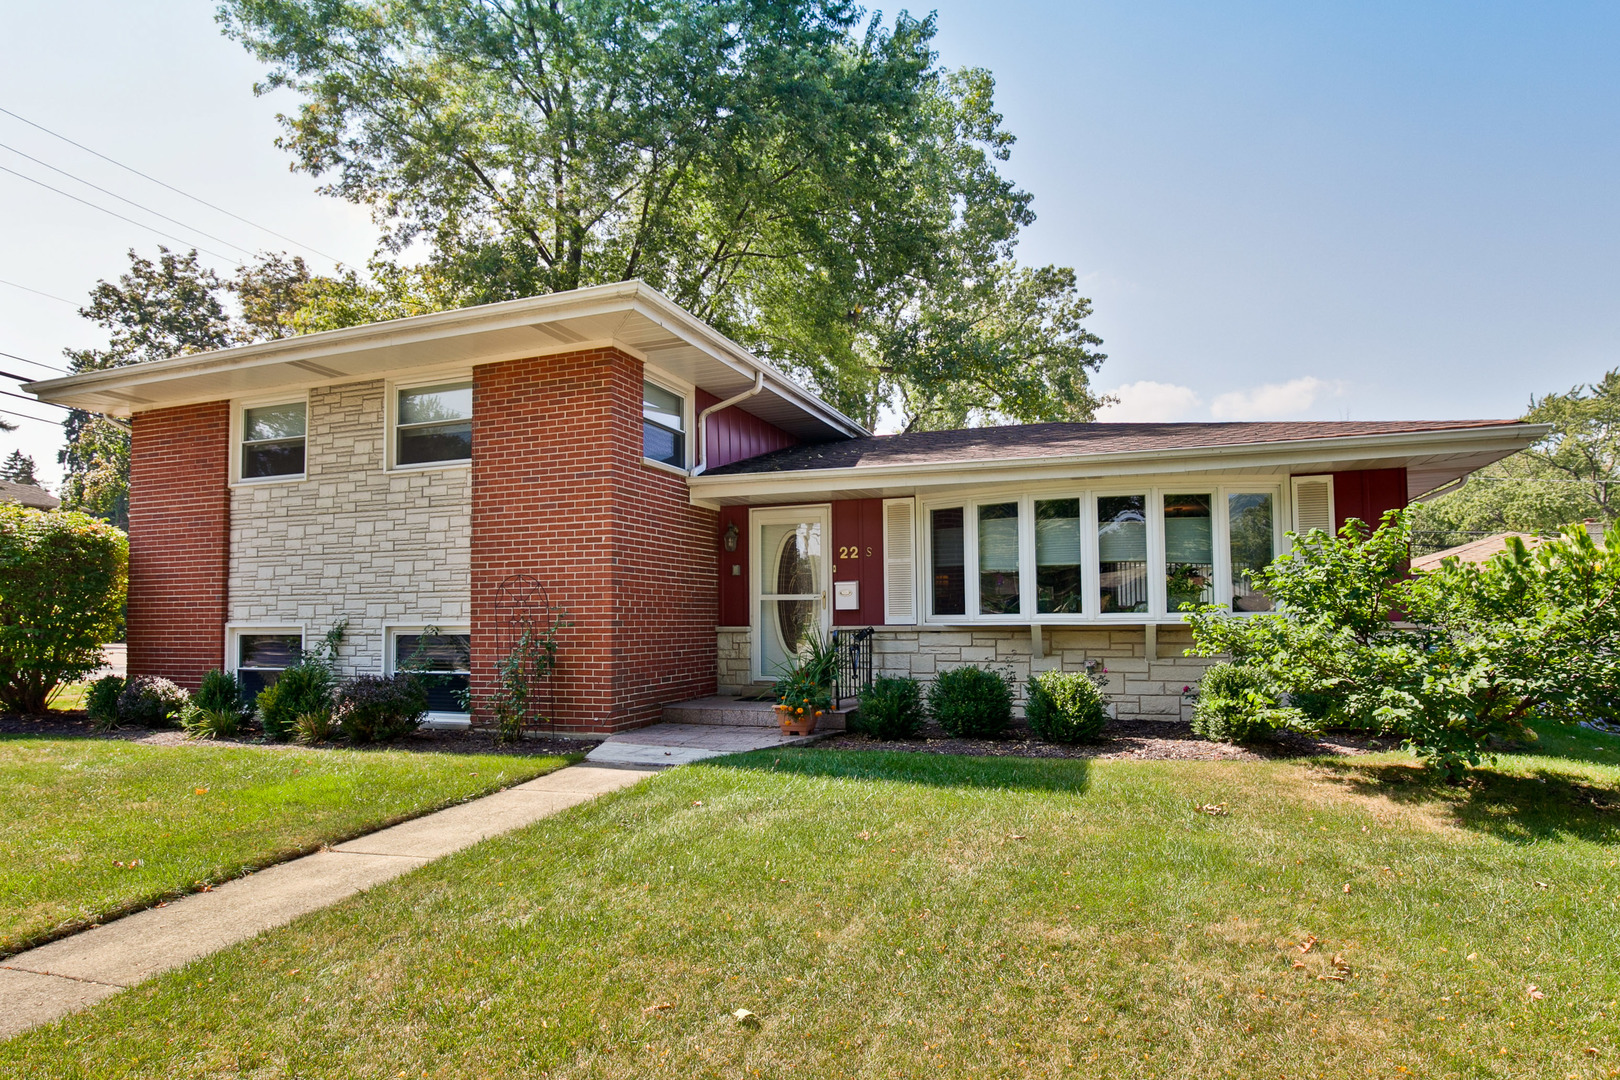 22 South Phelps Avenue Arlington Heights, IL 60004 - MLS #: 09757900